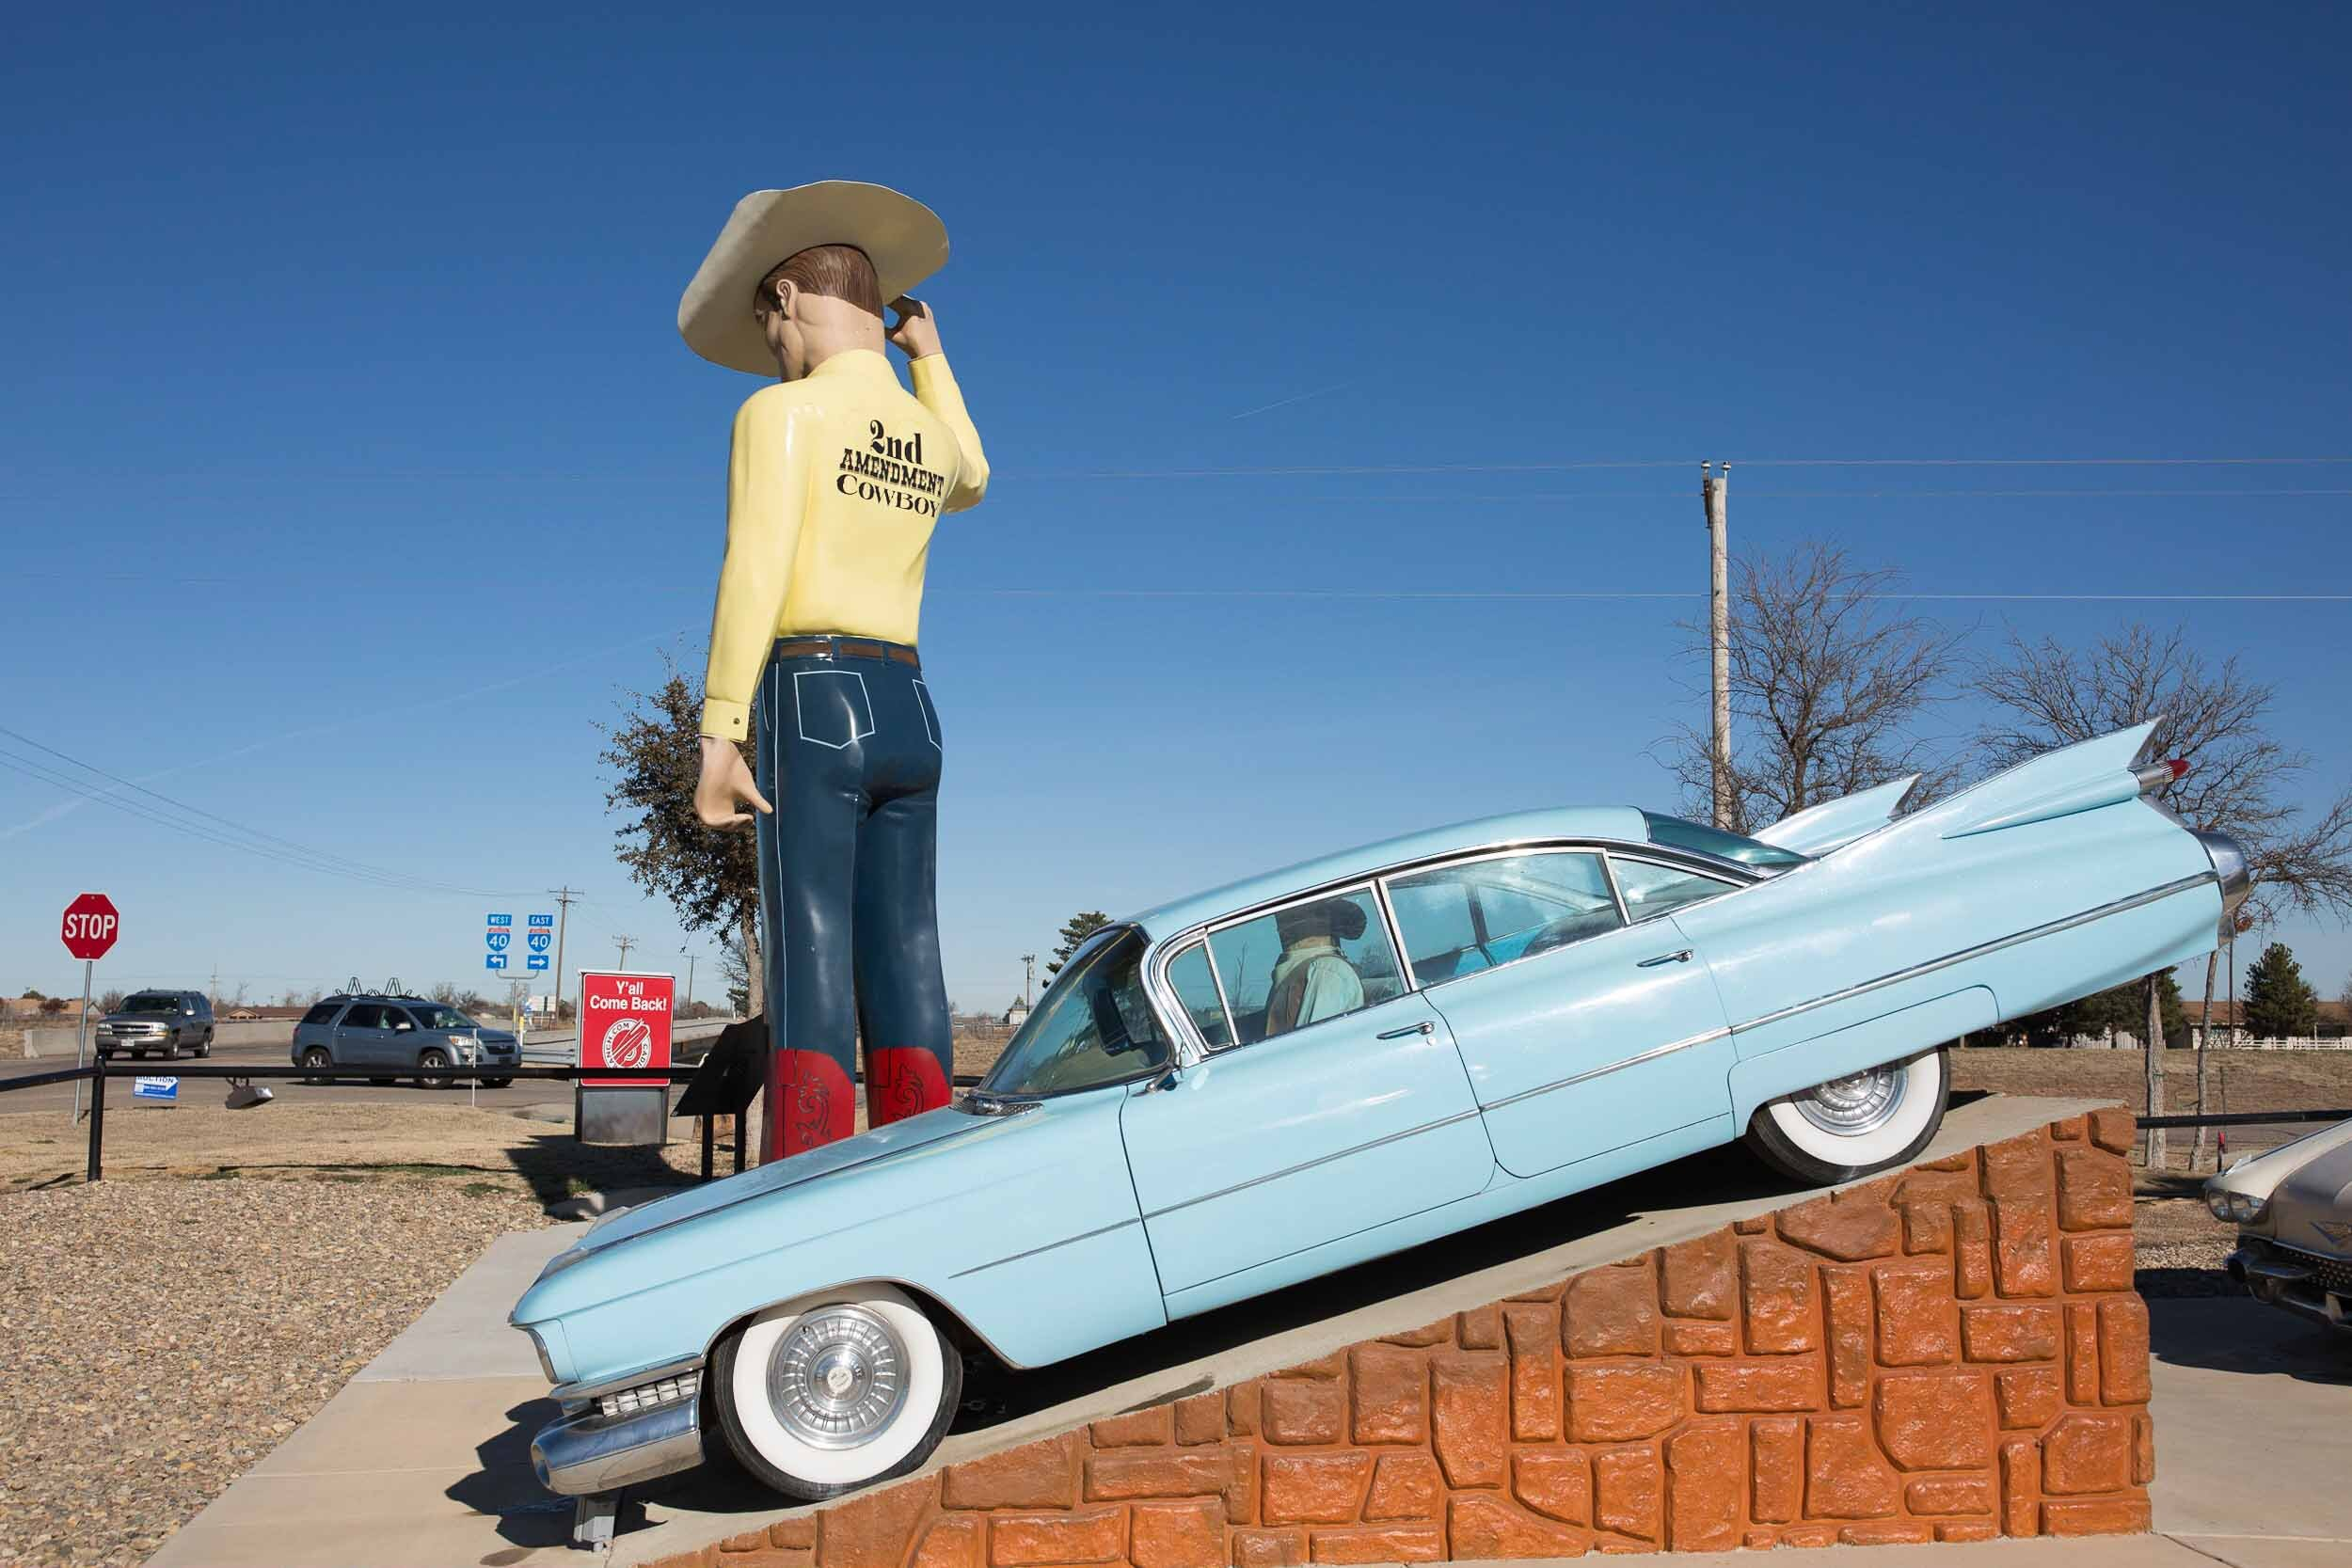 The 2nd Amendment Cowboy muffler man stands tall on Route 66 in Amarillo, TX